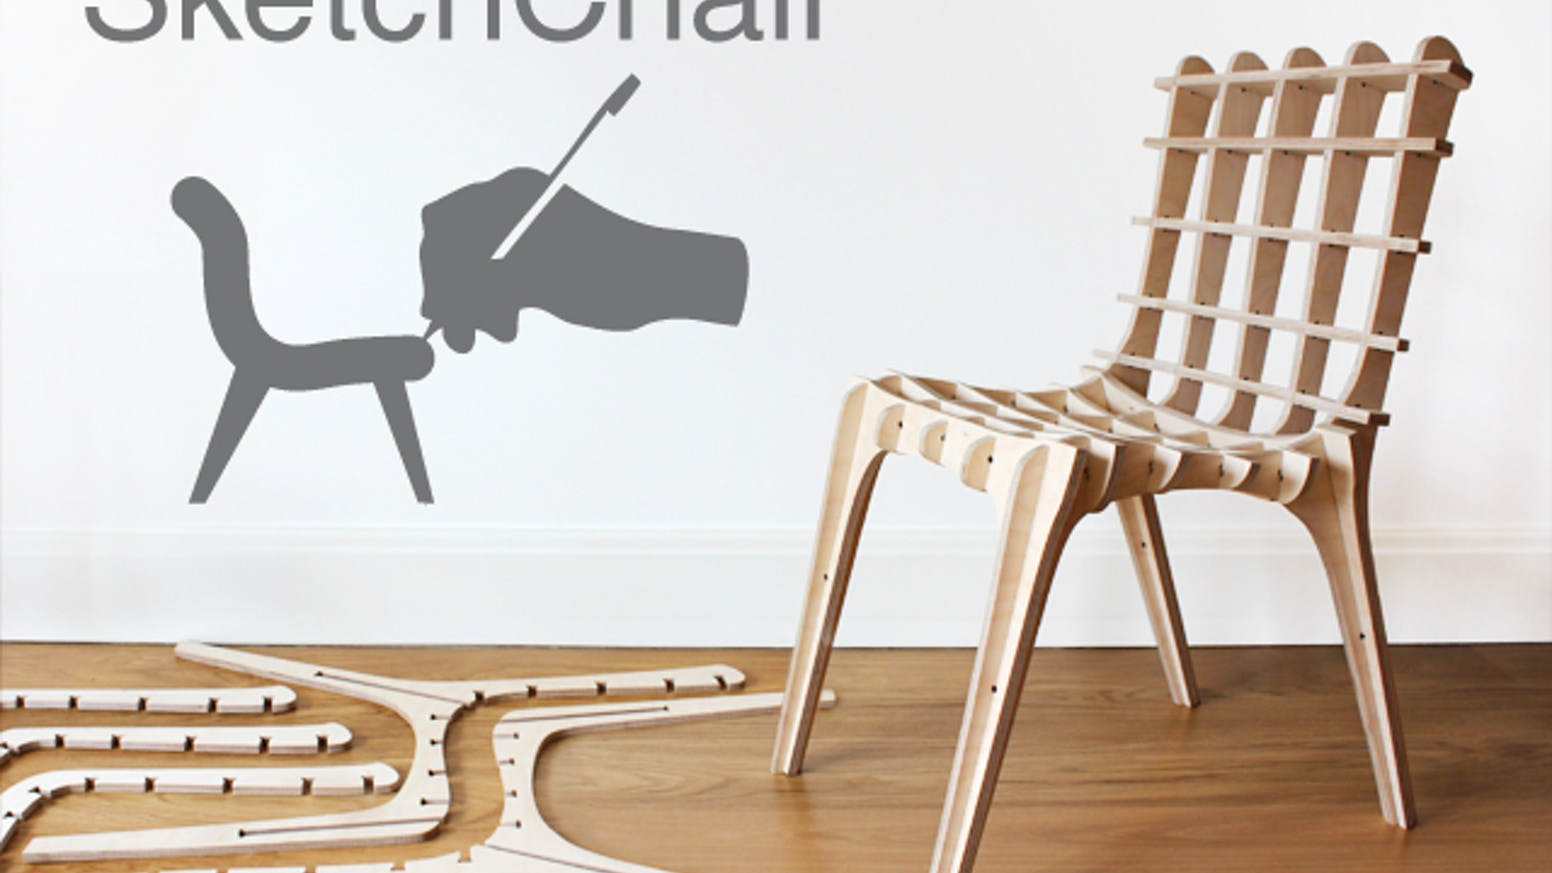 Sketchchair furniture designed by you by diatom kickstarter for Design your own furniture online free